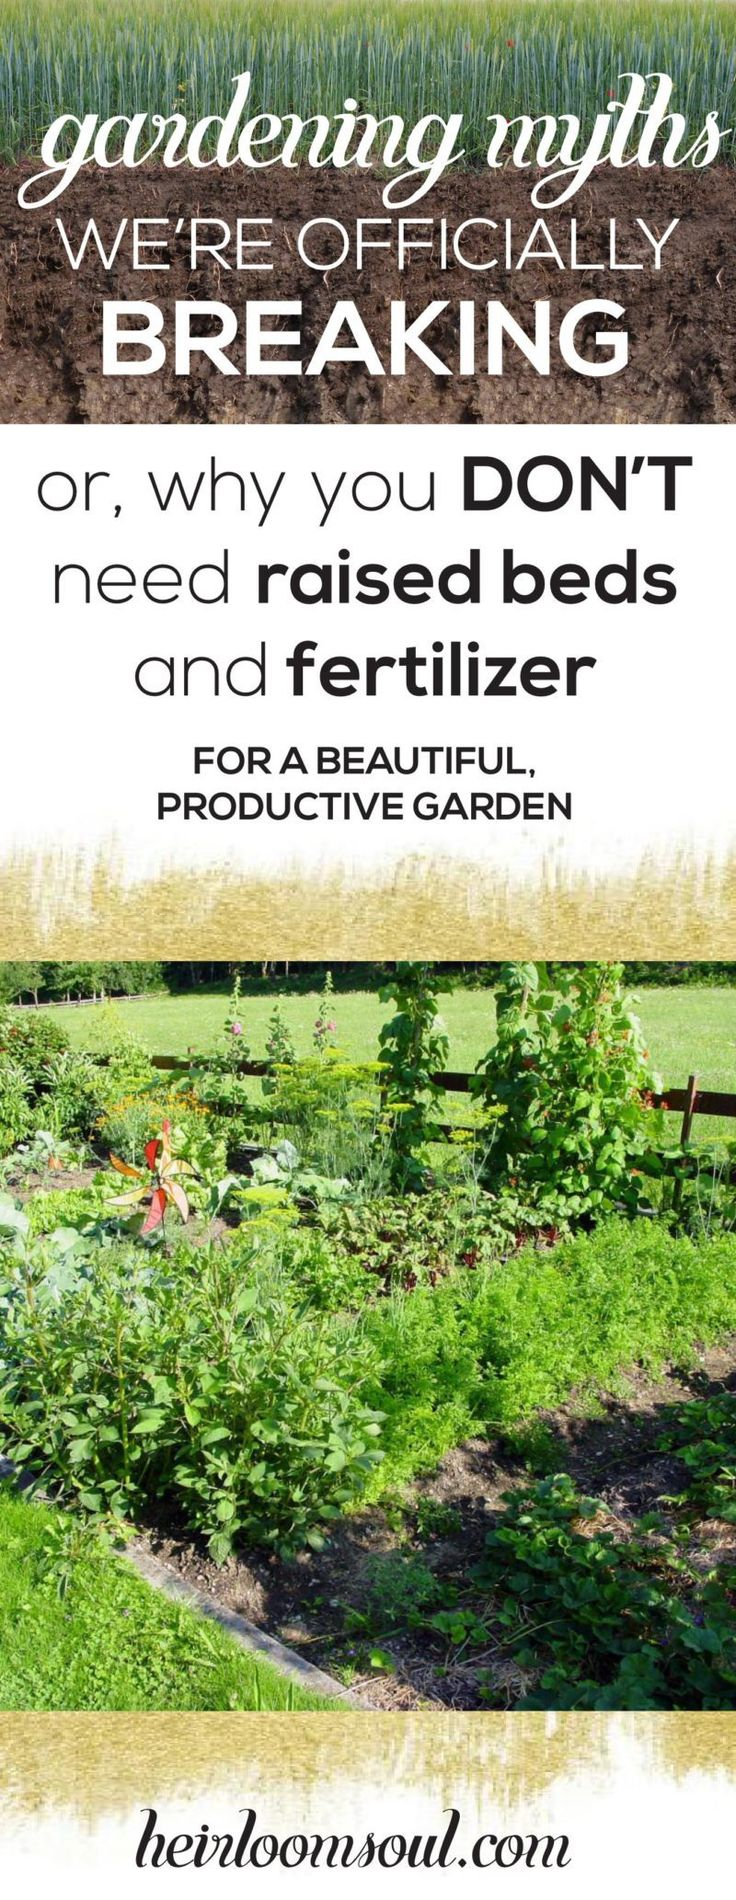 Why You Don't Need Raised Beds and Fertilizers for Your Garden - Organic Gardening Myths We're Officially Breaking | Heirloom Soul | heirloomsoul.com